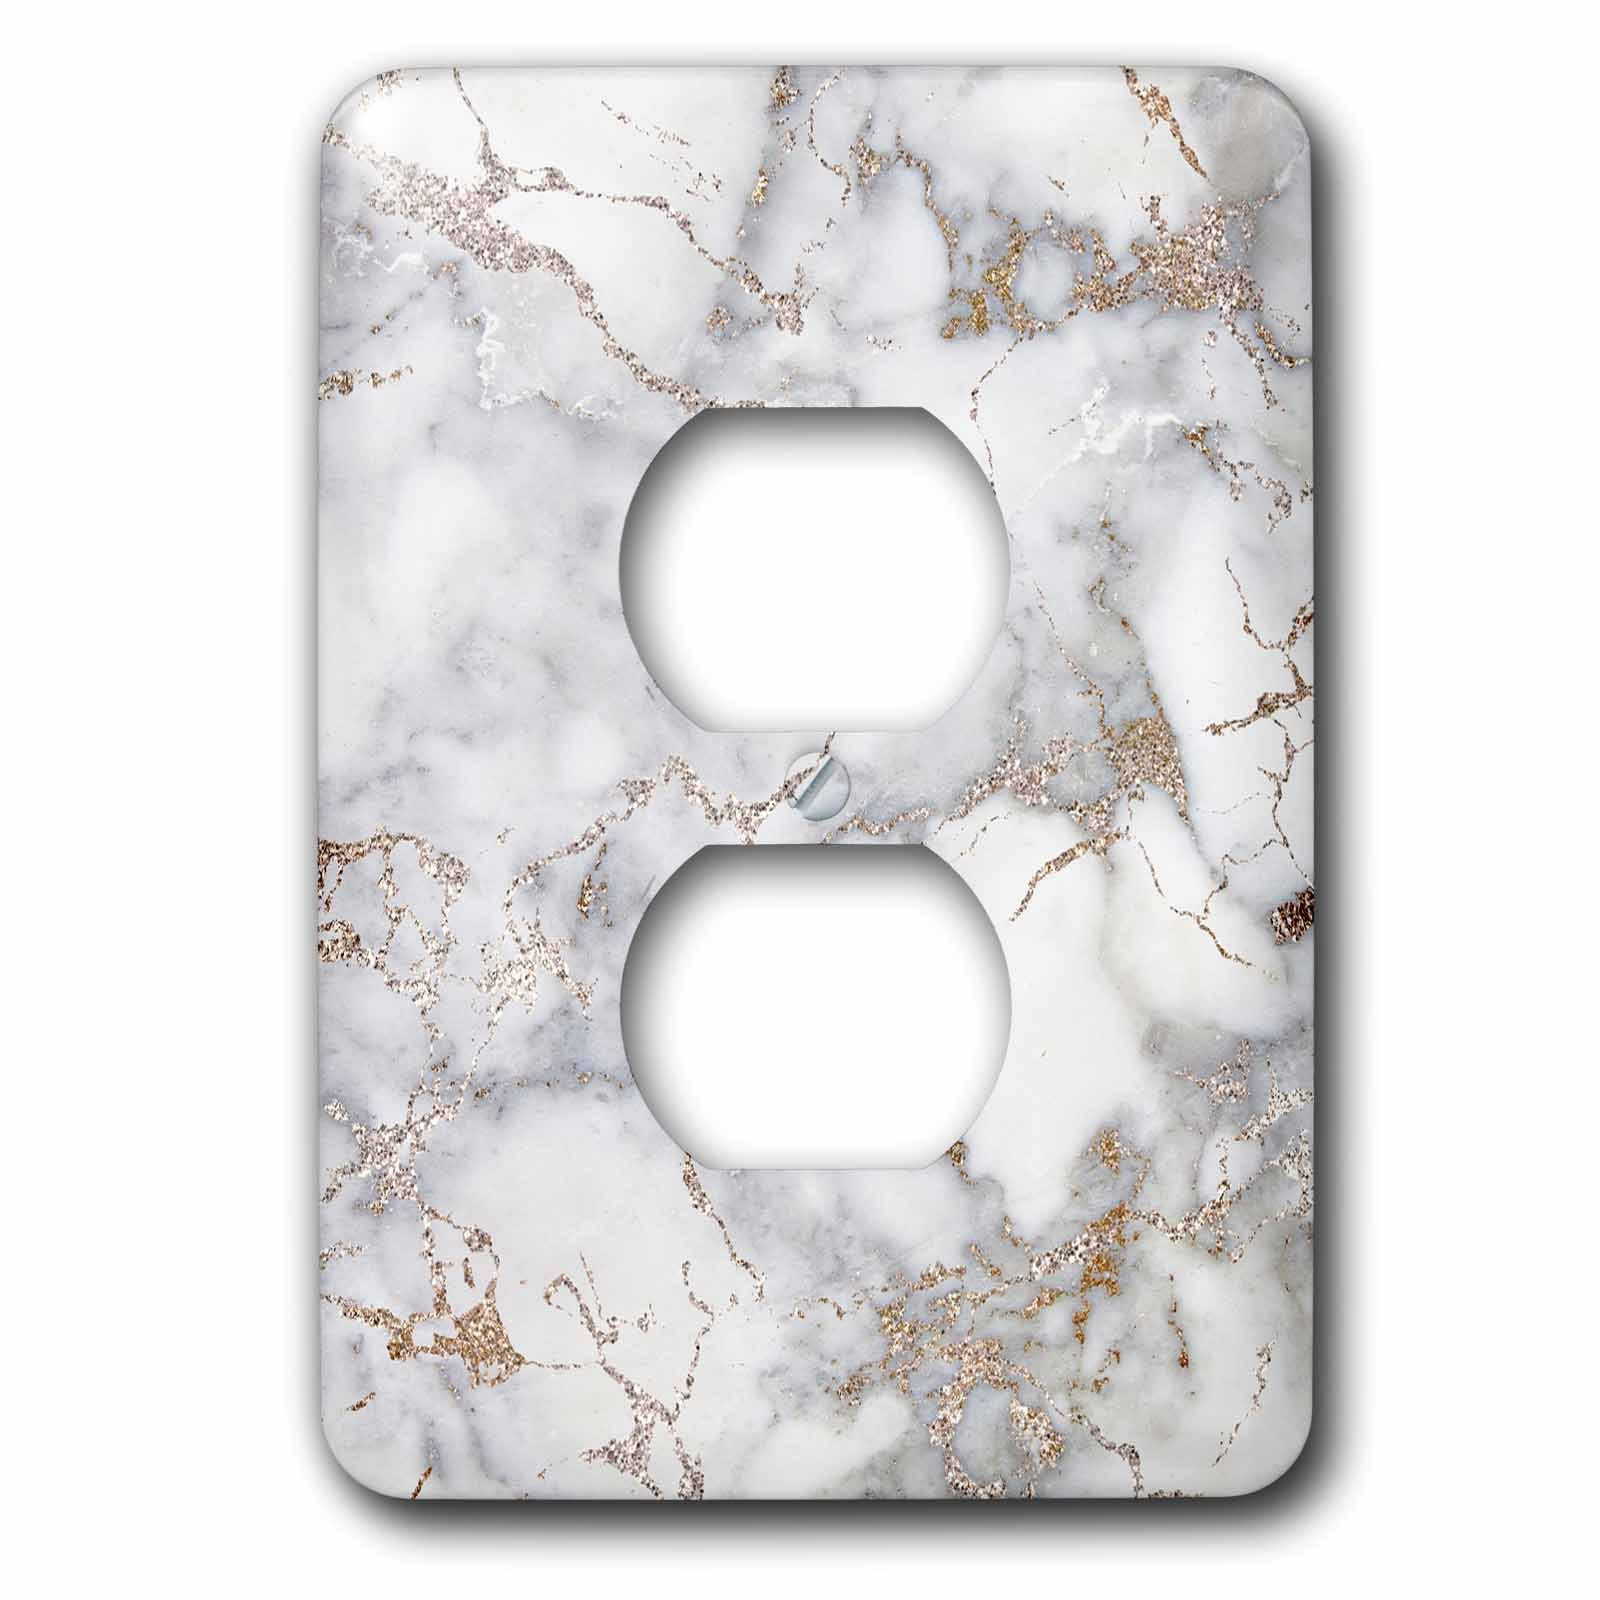 3dRose Uta Naumann Faux Glitter Pattern - Image of Luxury Shiny Trendy Rose gold Glitter Marble Agate Quartz - Light Switch Covers - 2 plug outlet cover (lsp_275084_6)